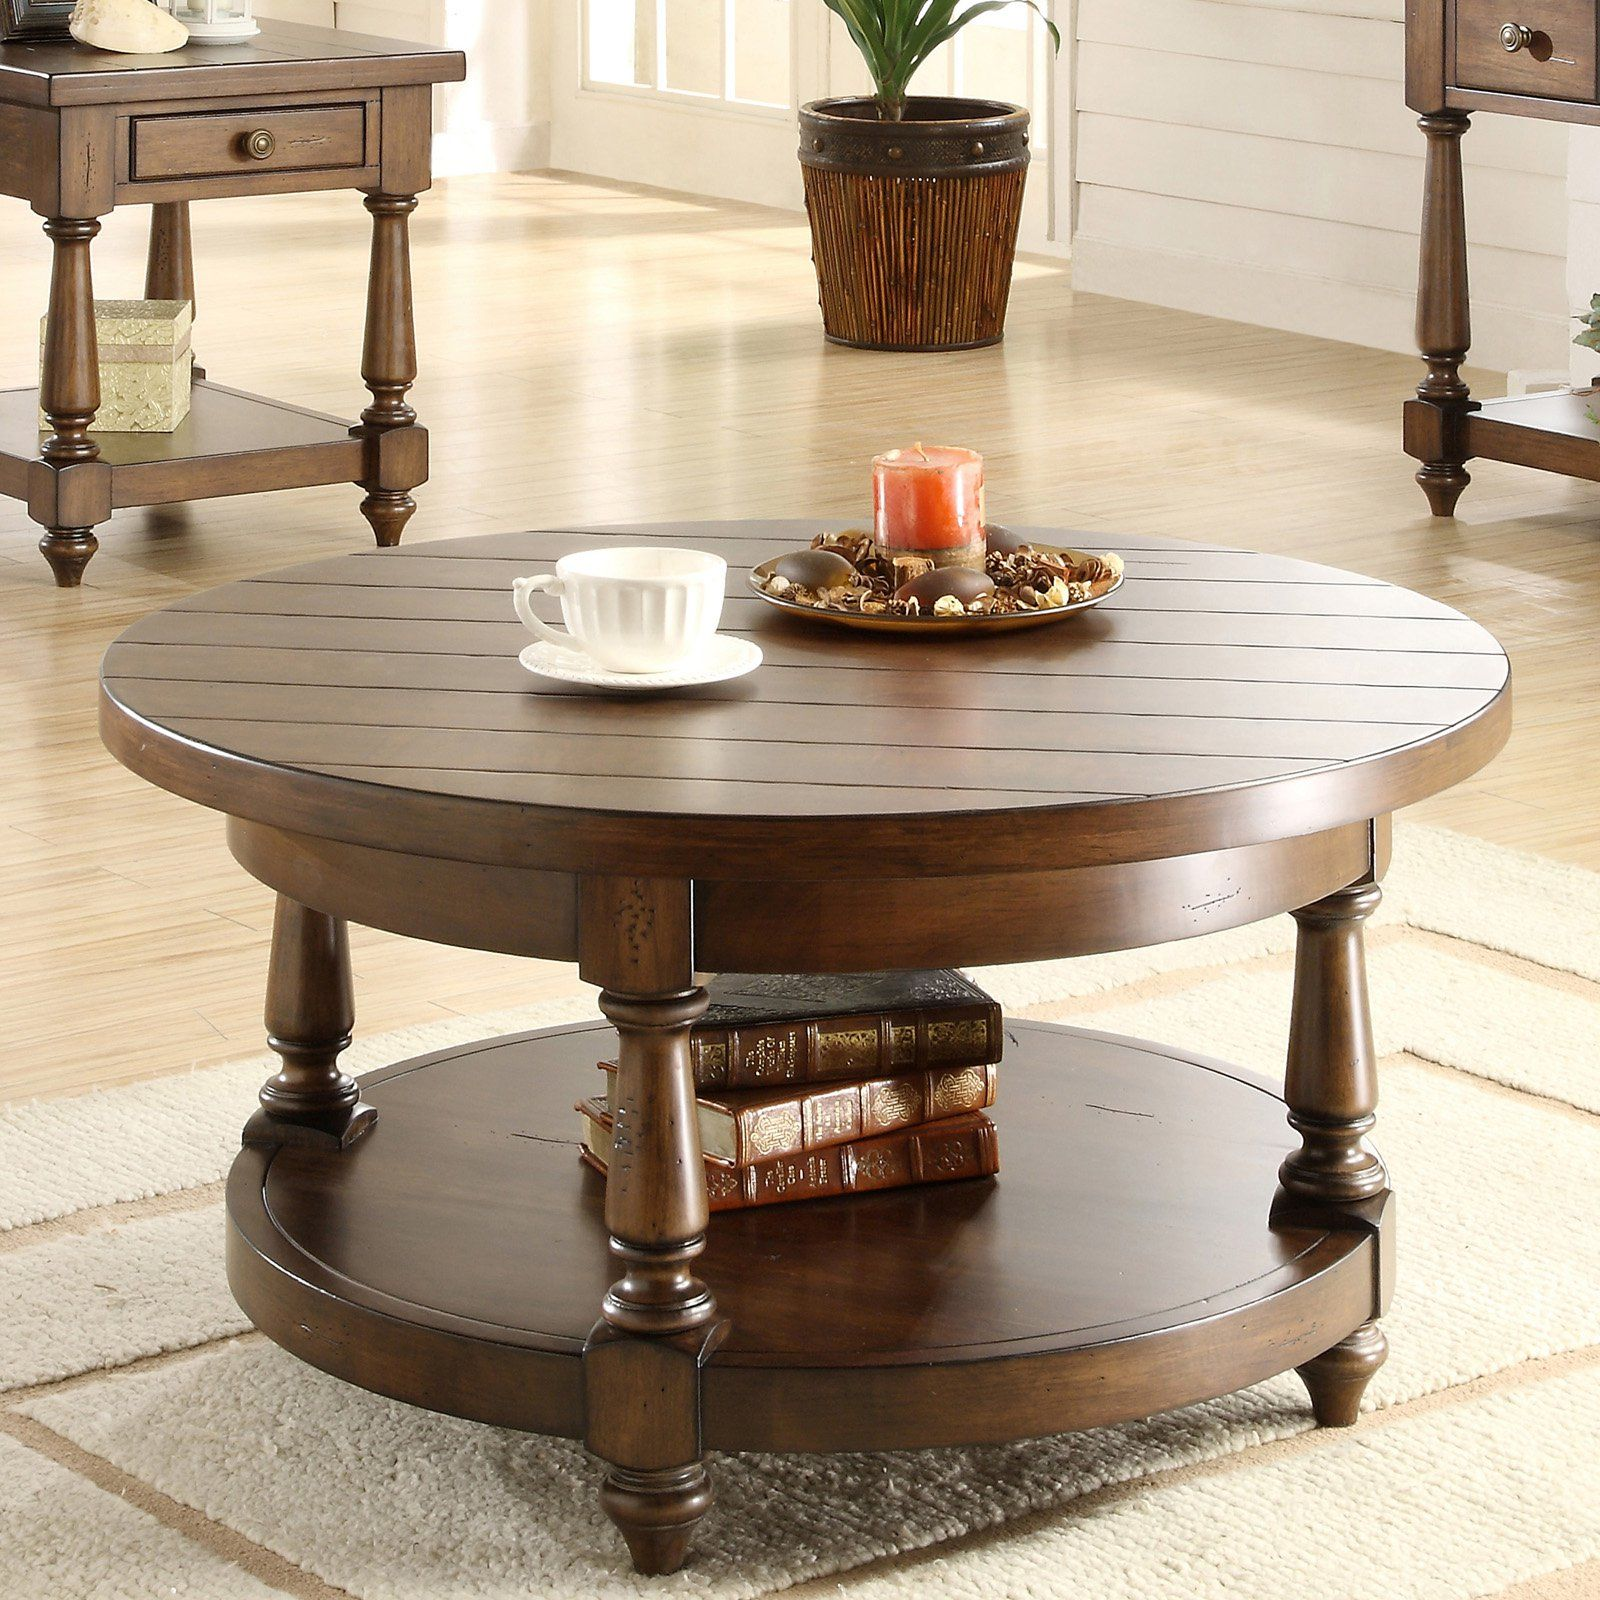 Riverside Newburgh Round Cocktail Table Antique Ginger Casual Yet Refined The Riverside Newburgh Round Coffee Table Round Coffee Table Riverside Furniture [ 1600 x 1600 Pixel ]